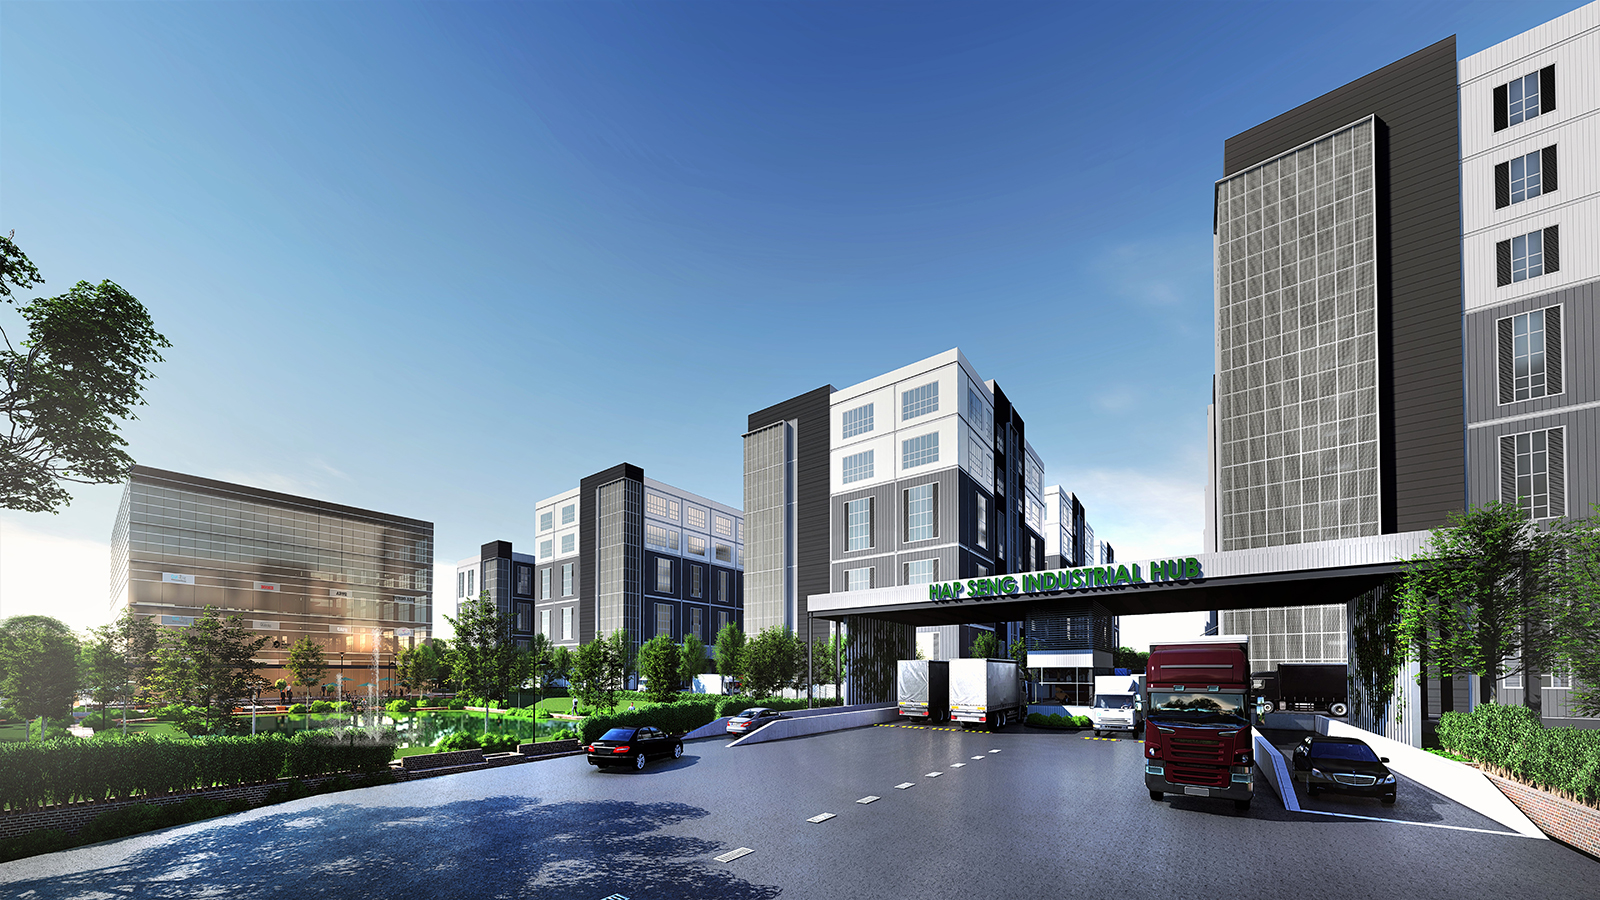 The Key Features of Hap Seng Industrial Hub